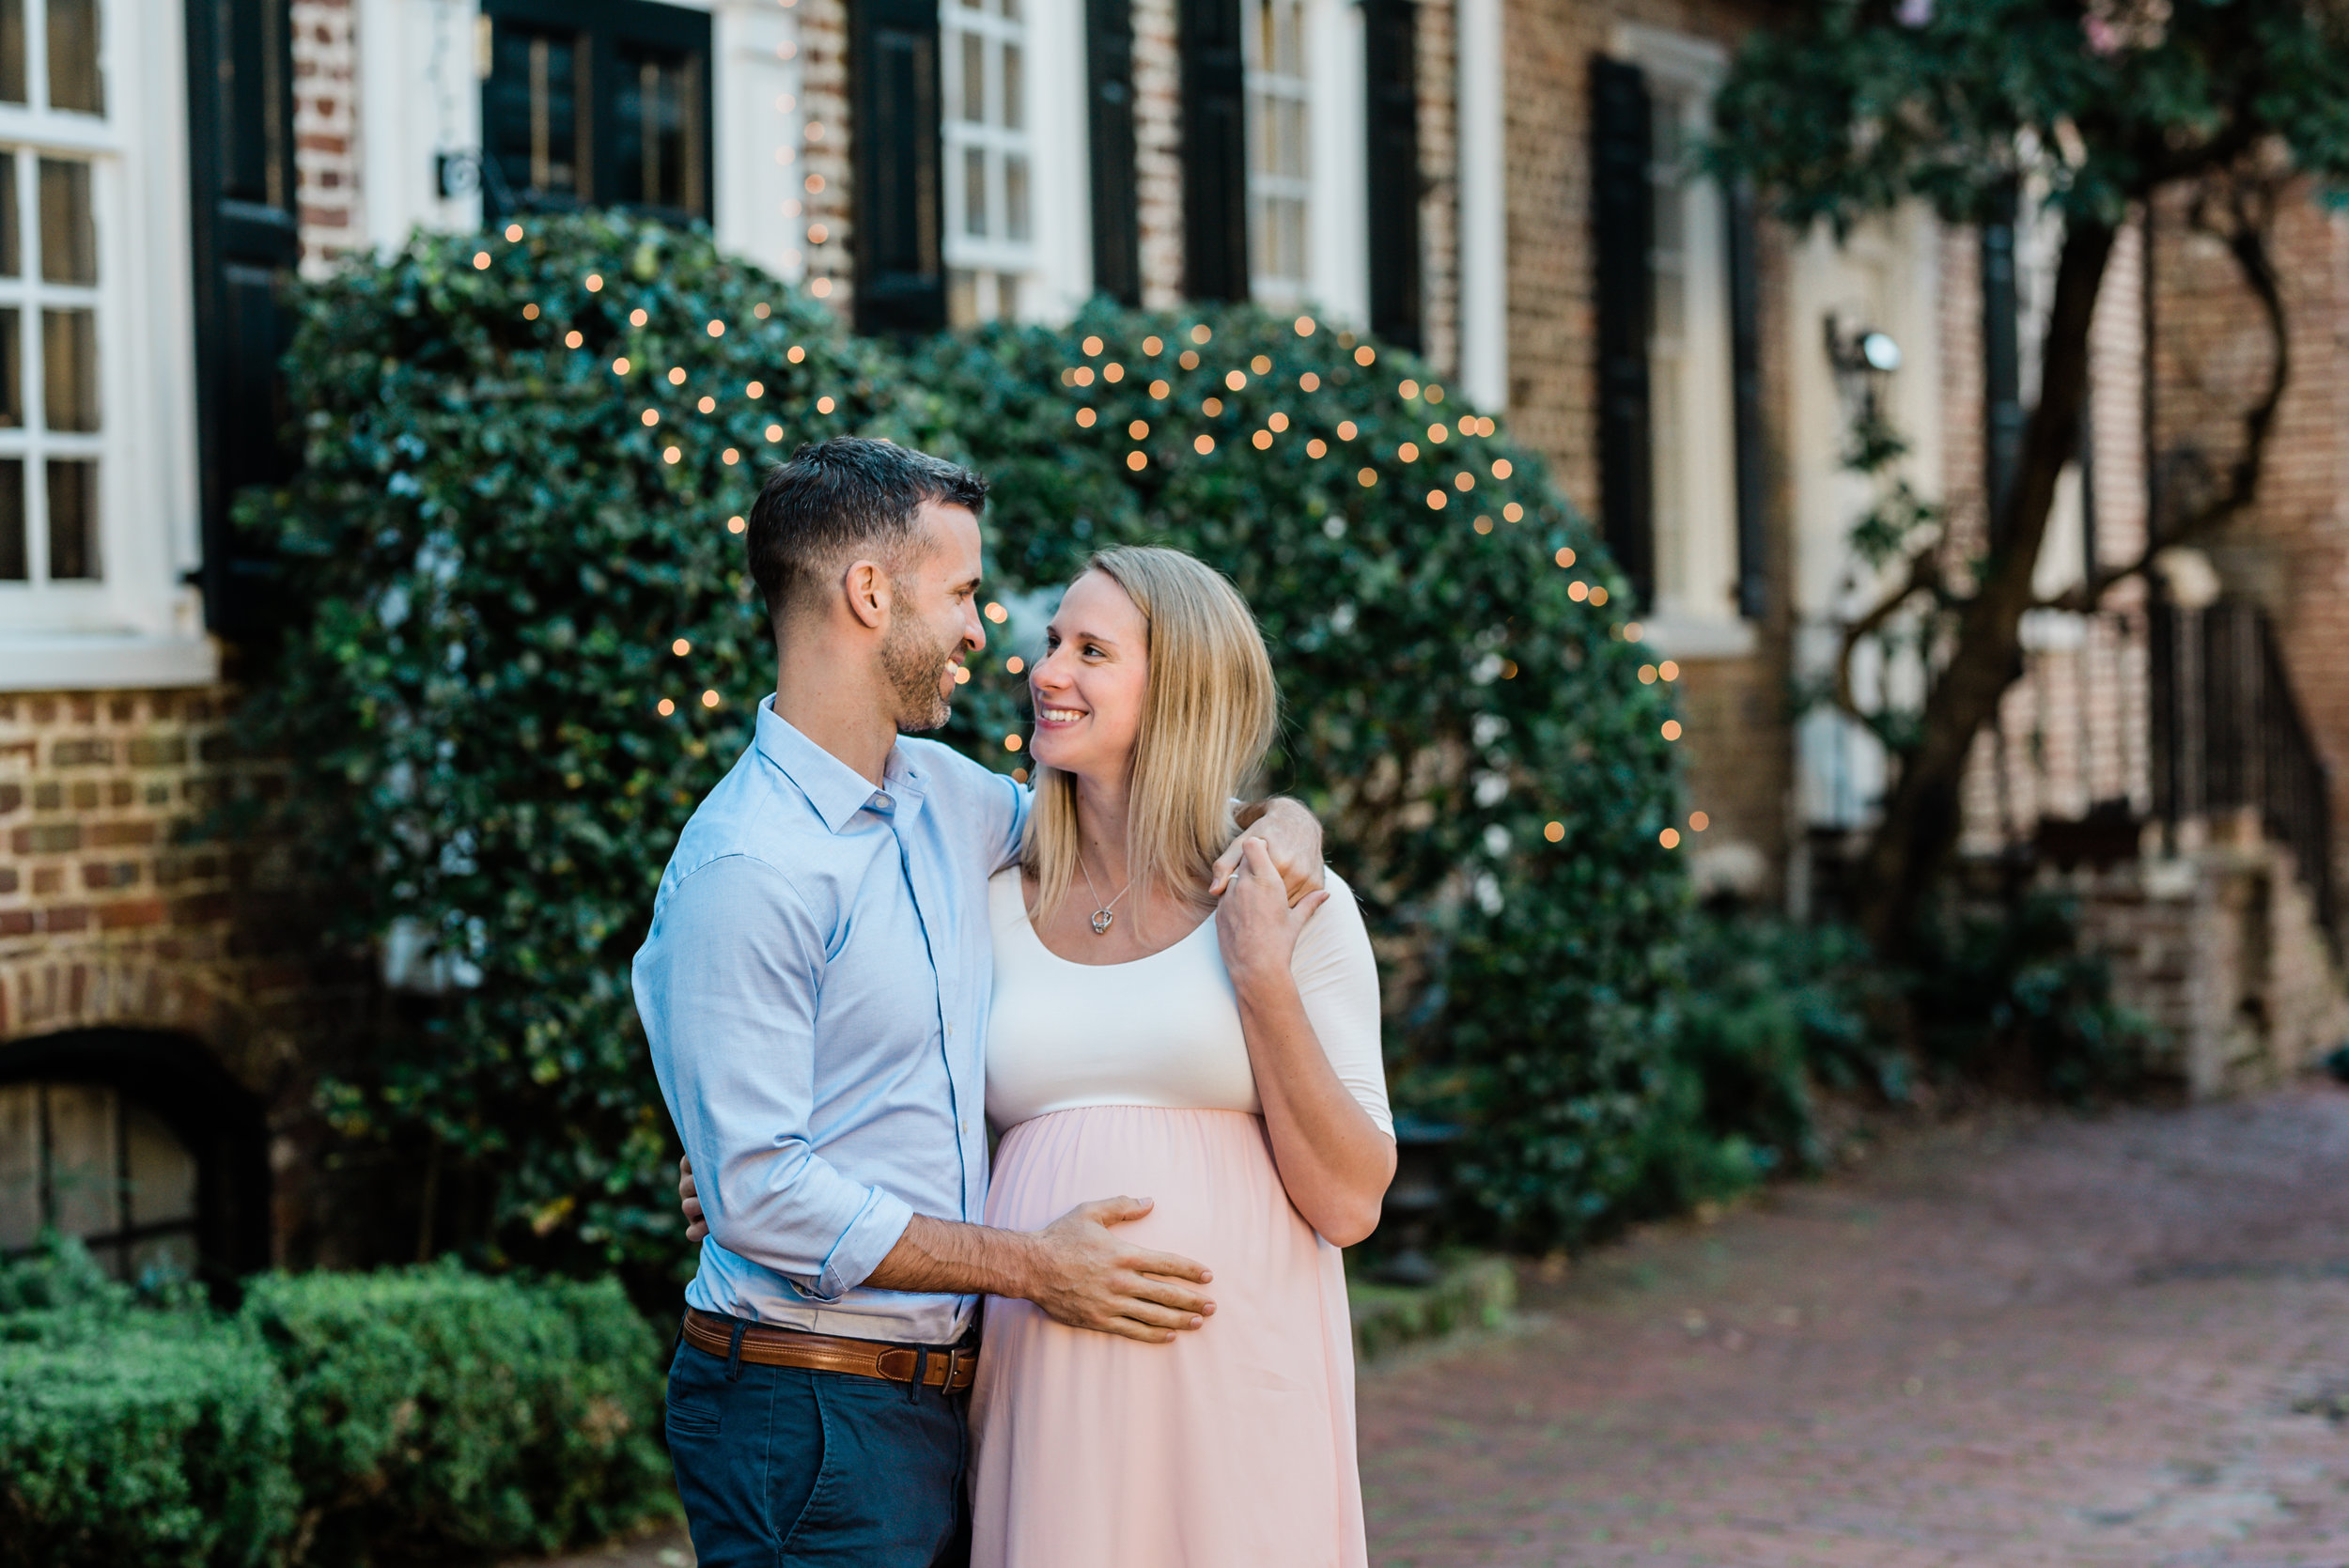 Charleston-Maternity-Photographer-FSP_9249 copy.jpg